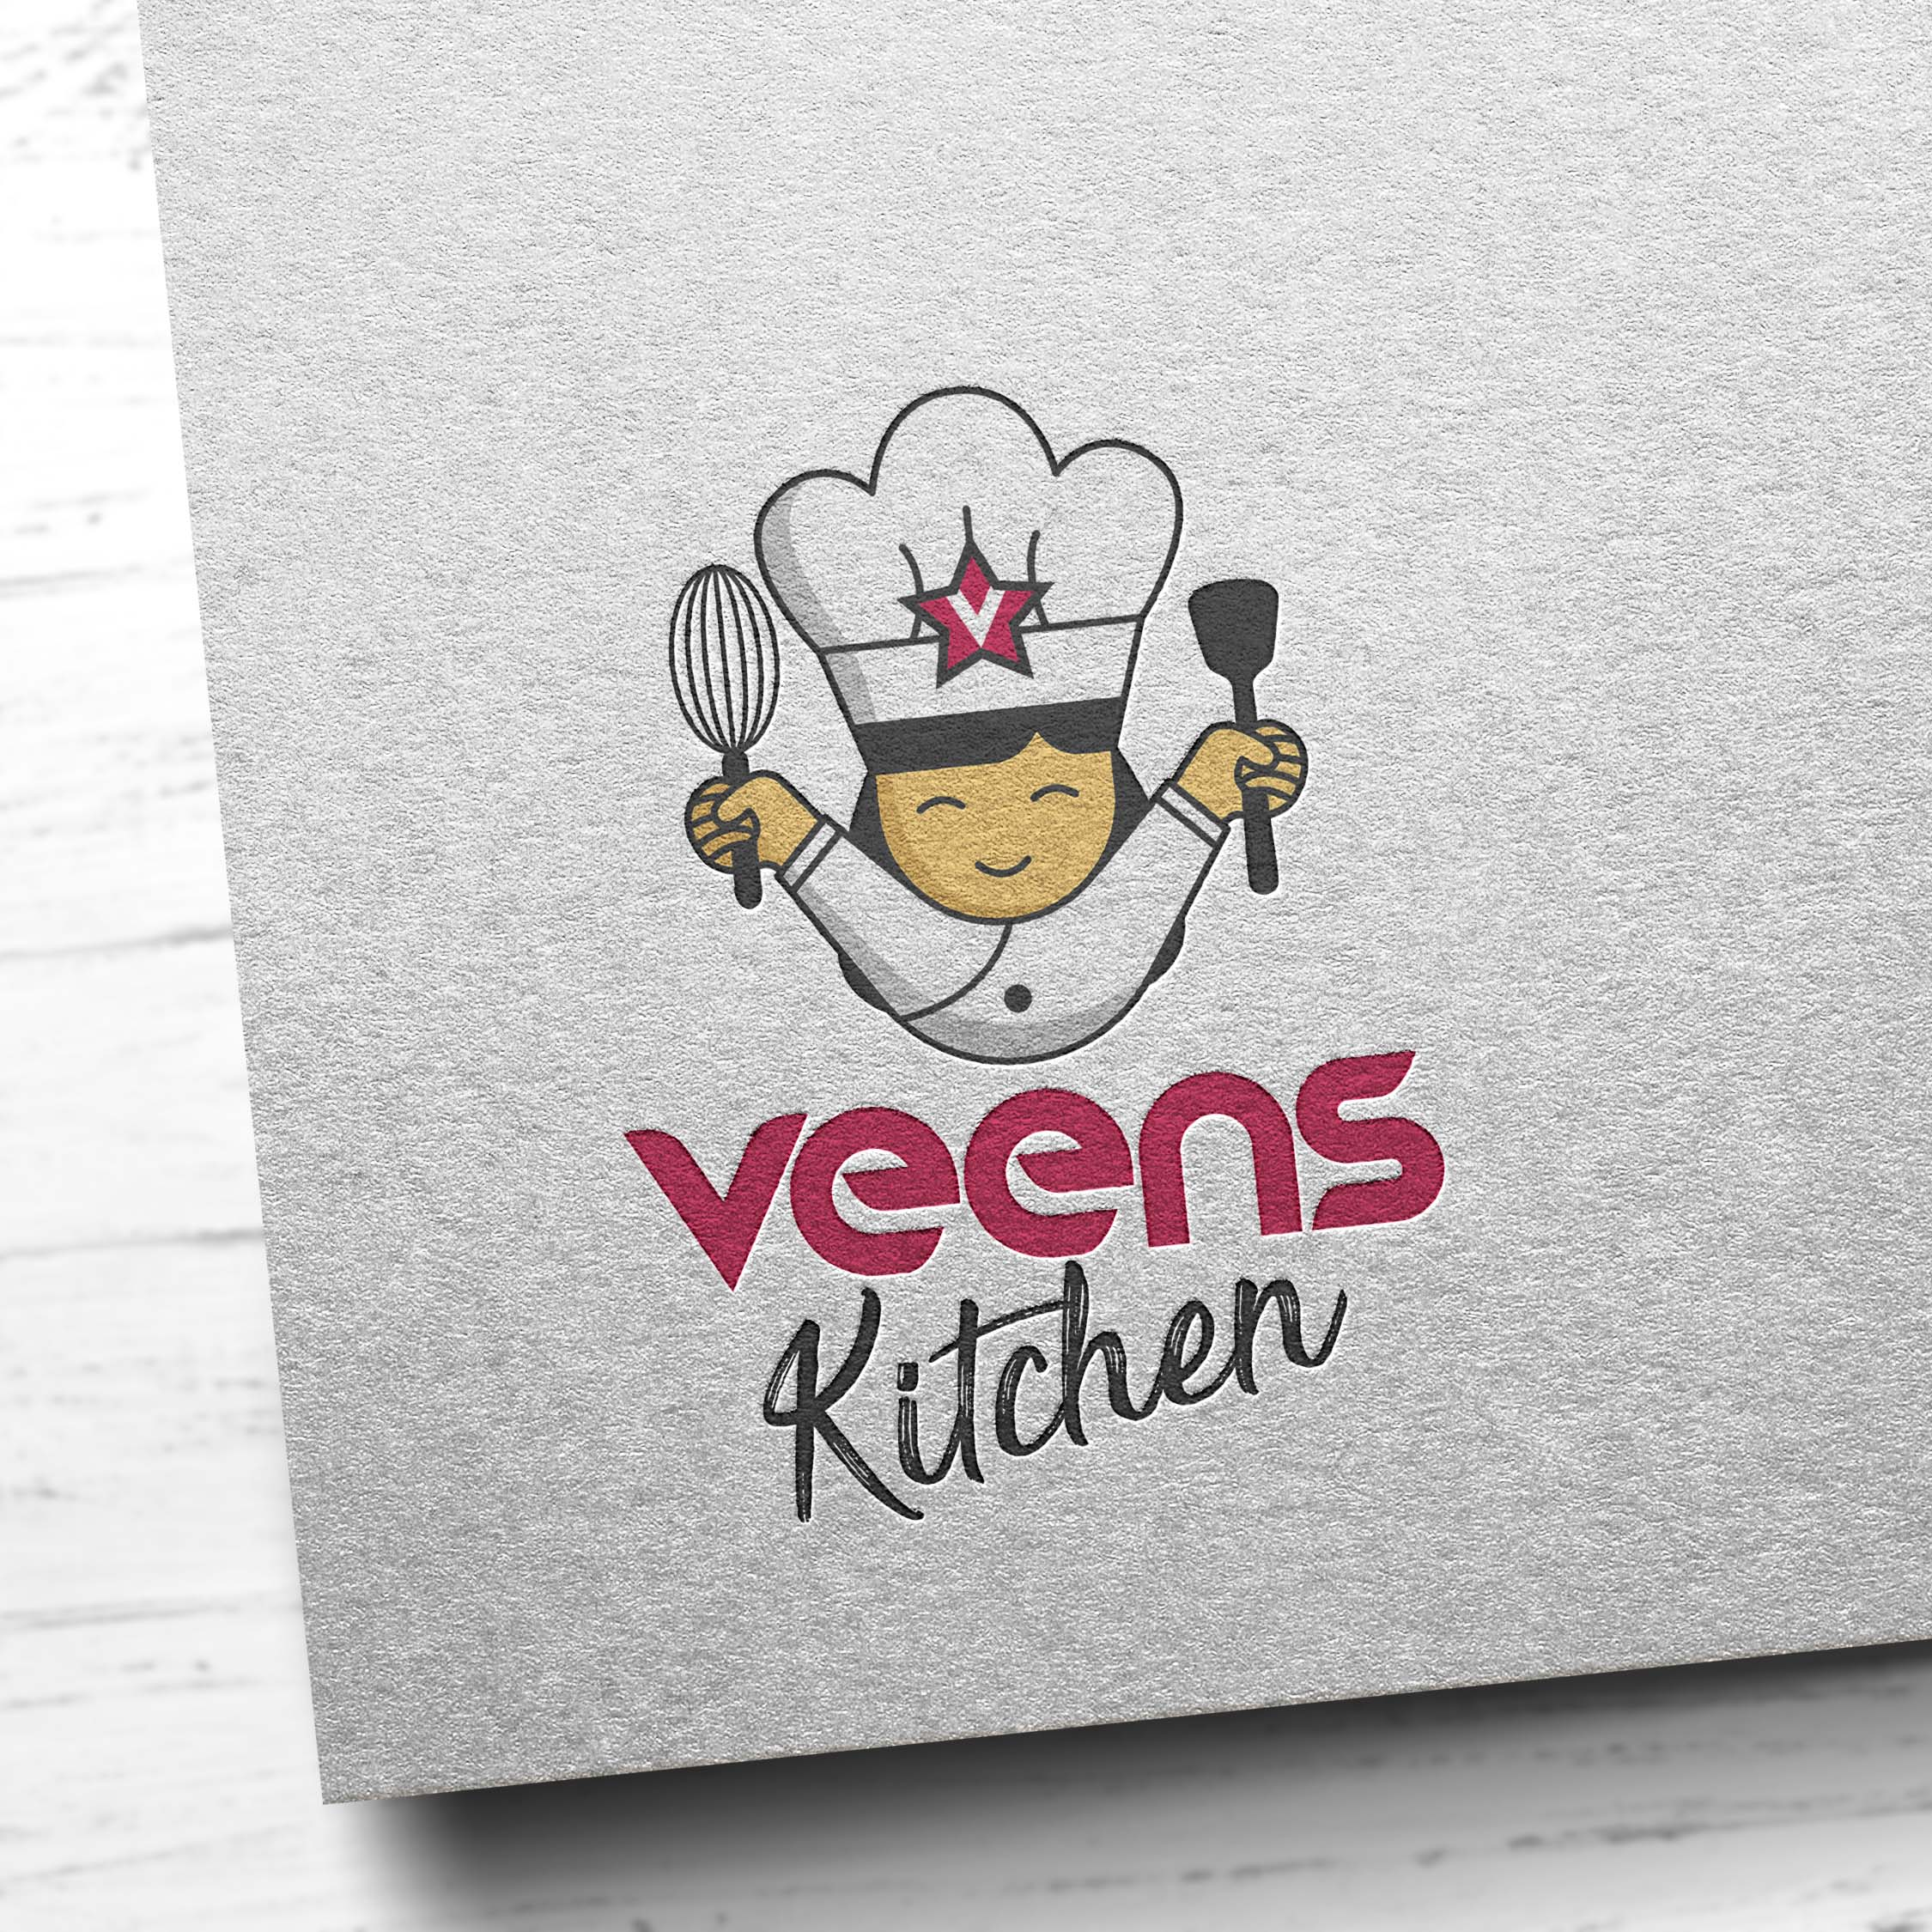 Veens Kitchen Logo